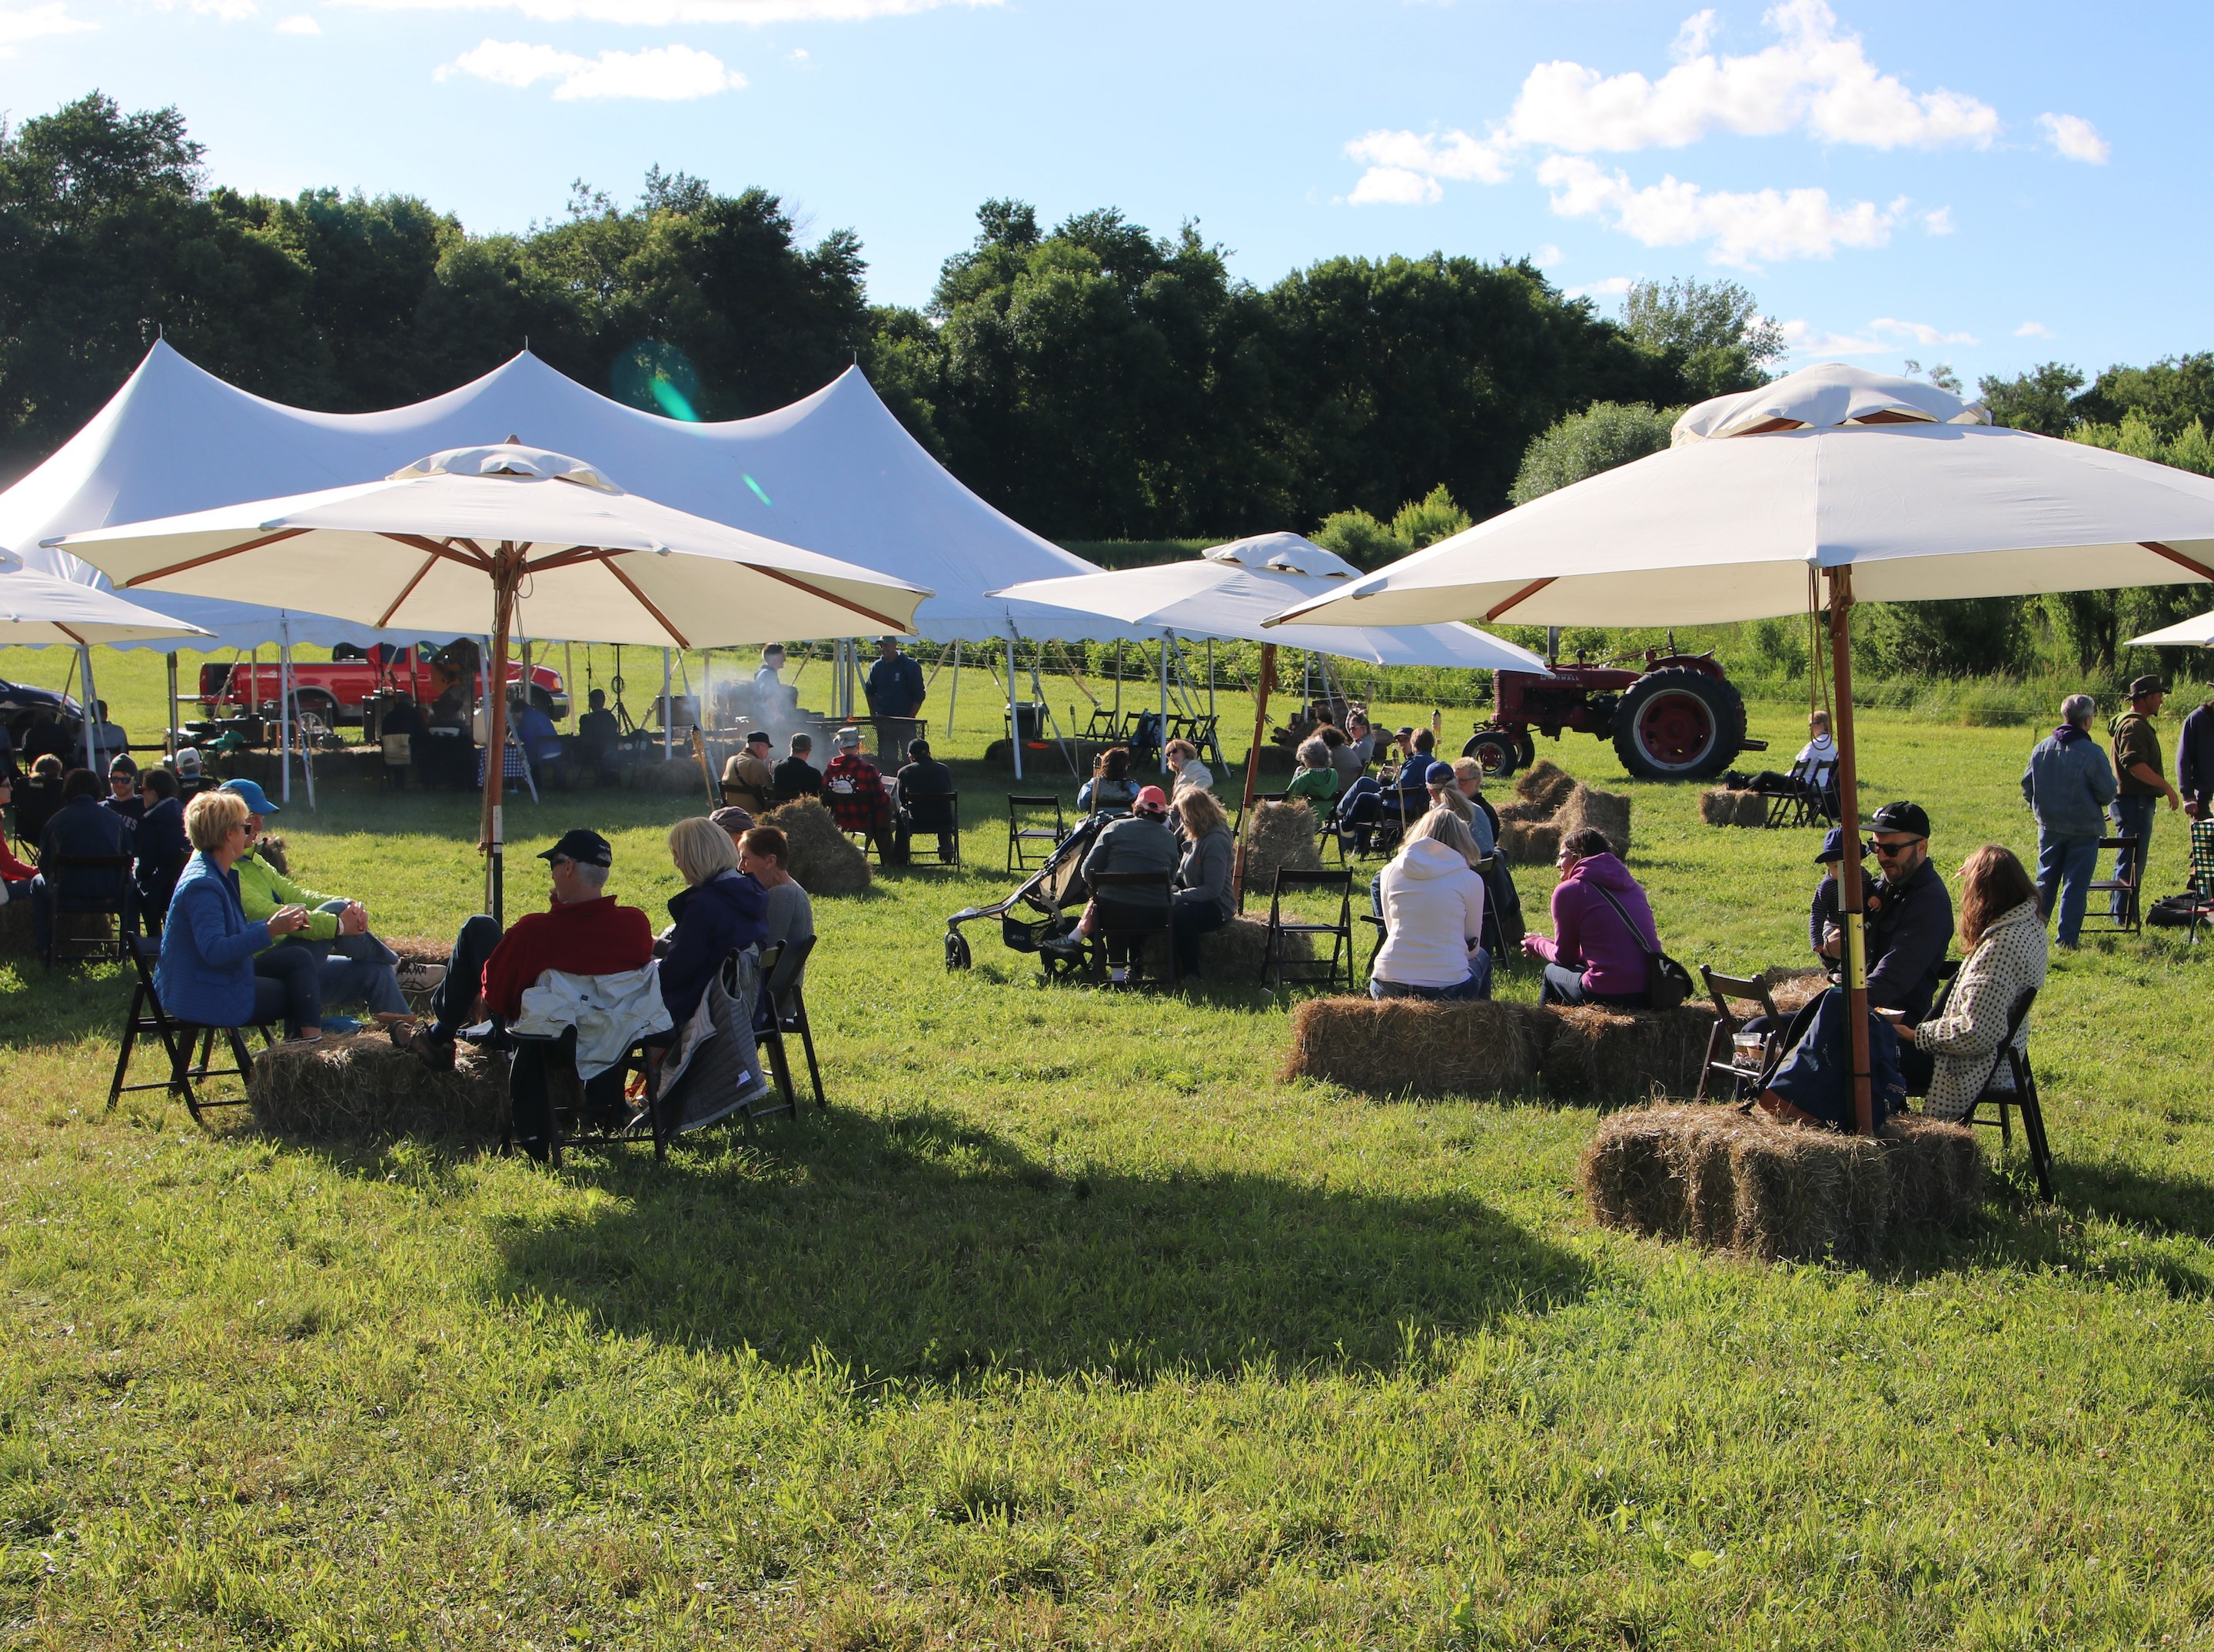 Tangletown Gardens' annual Friends and Family Day event includes hayrides, picnic lunches and more. Photo courtesy Tangletown Gardens